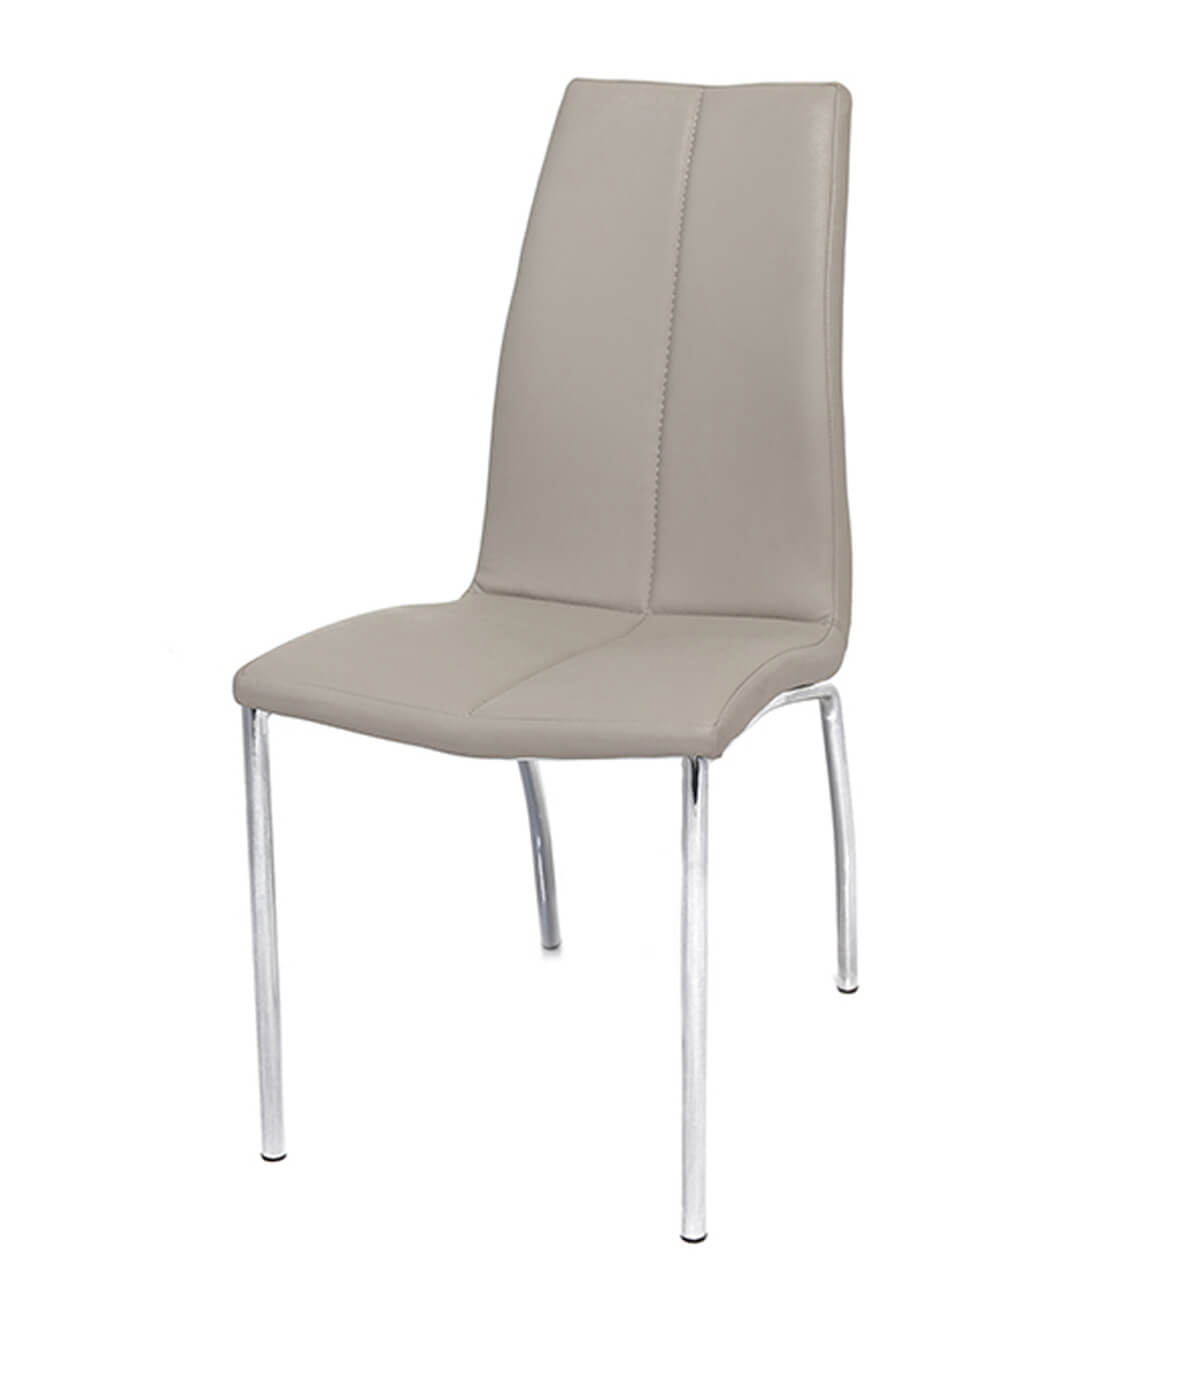 Boston Faux Leather Modern Dining Chair (Mink Grey)